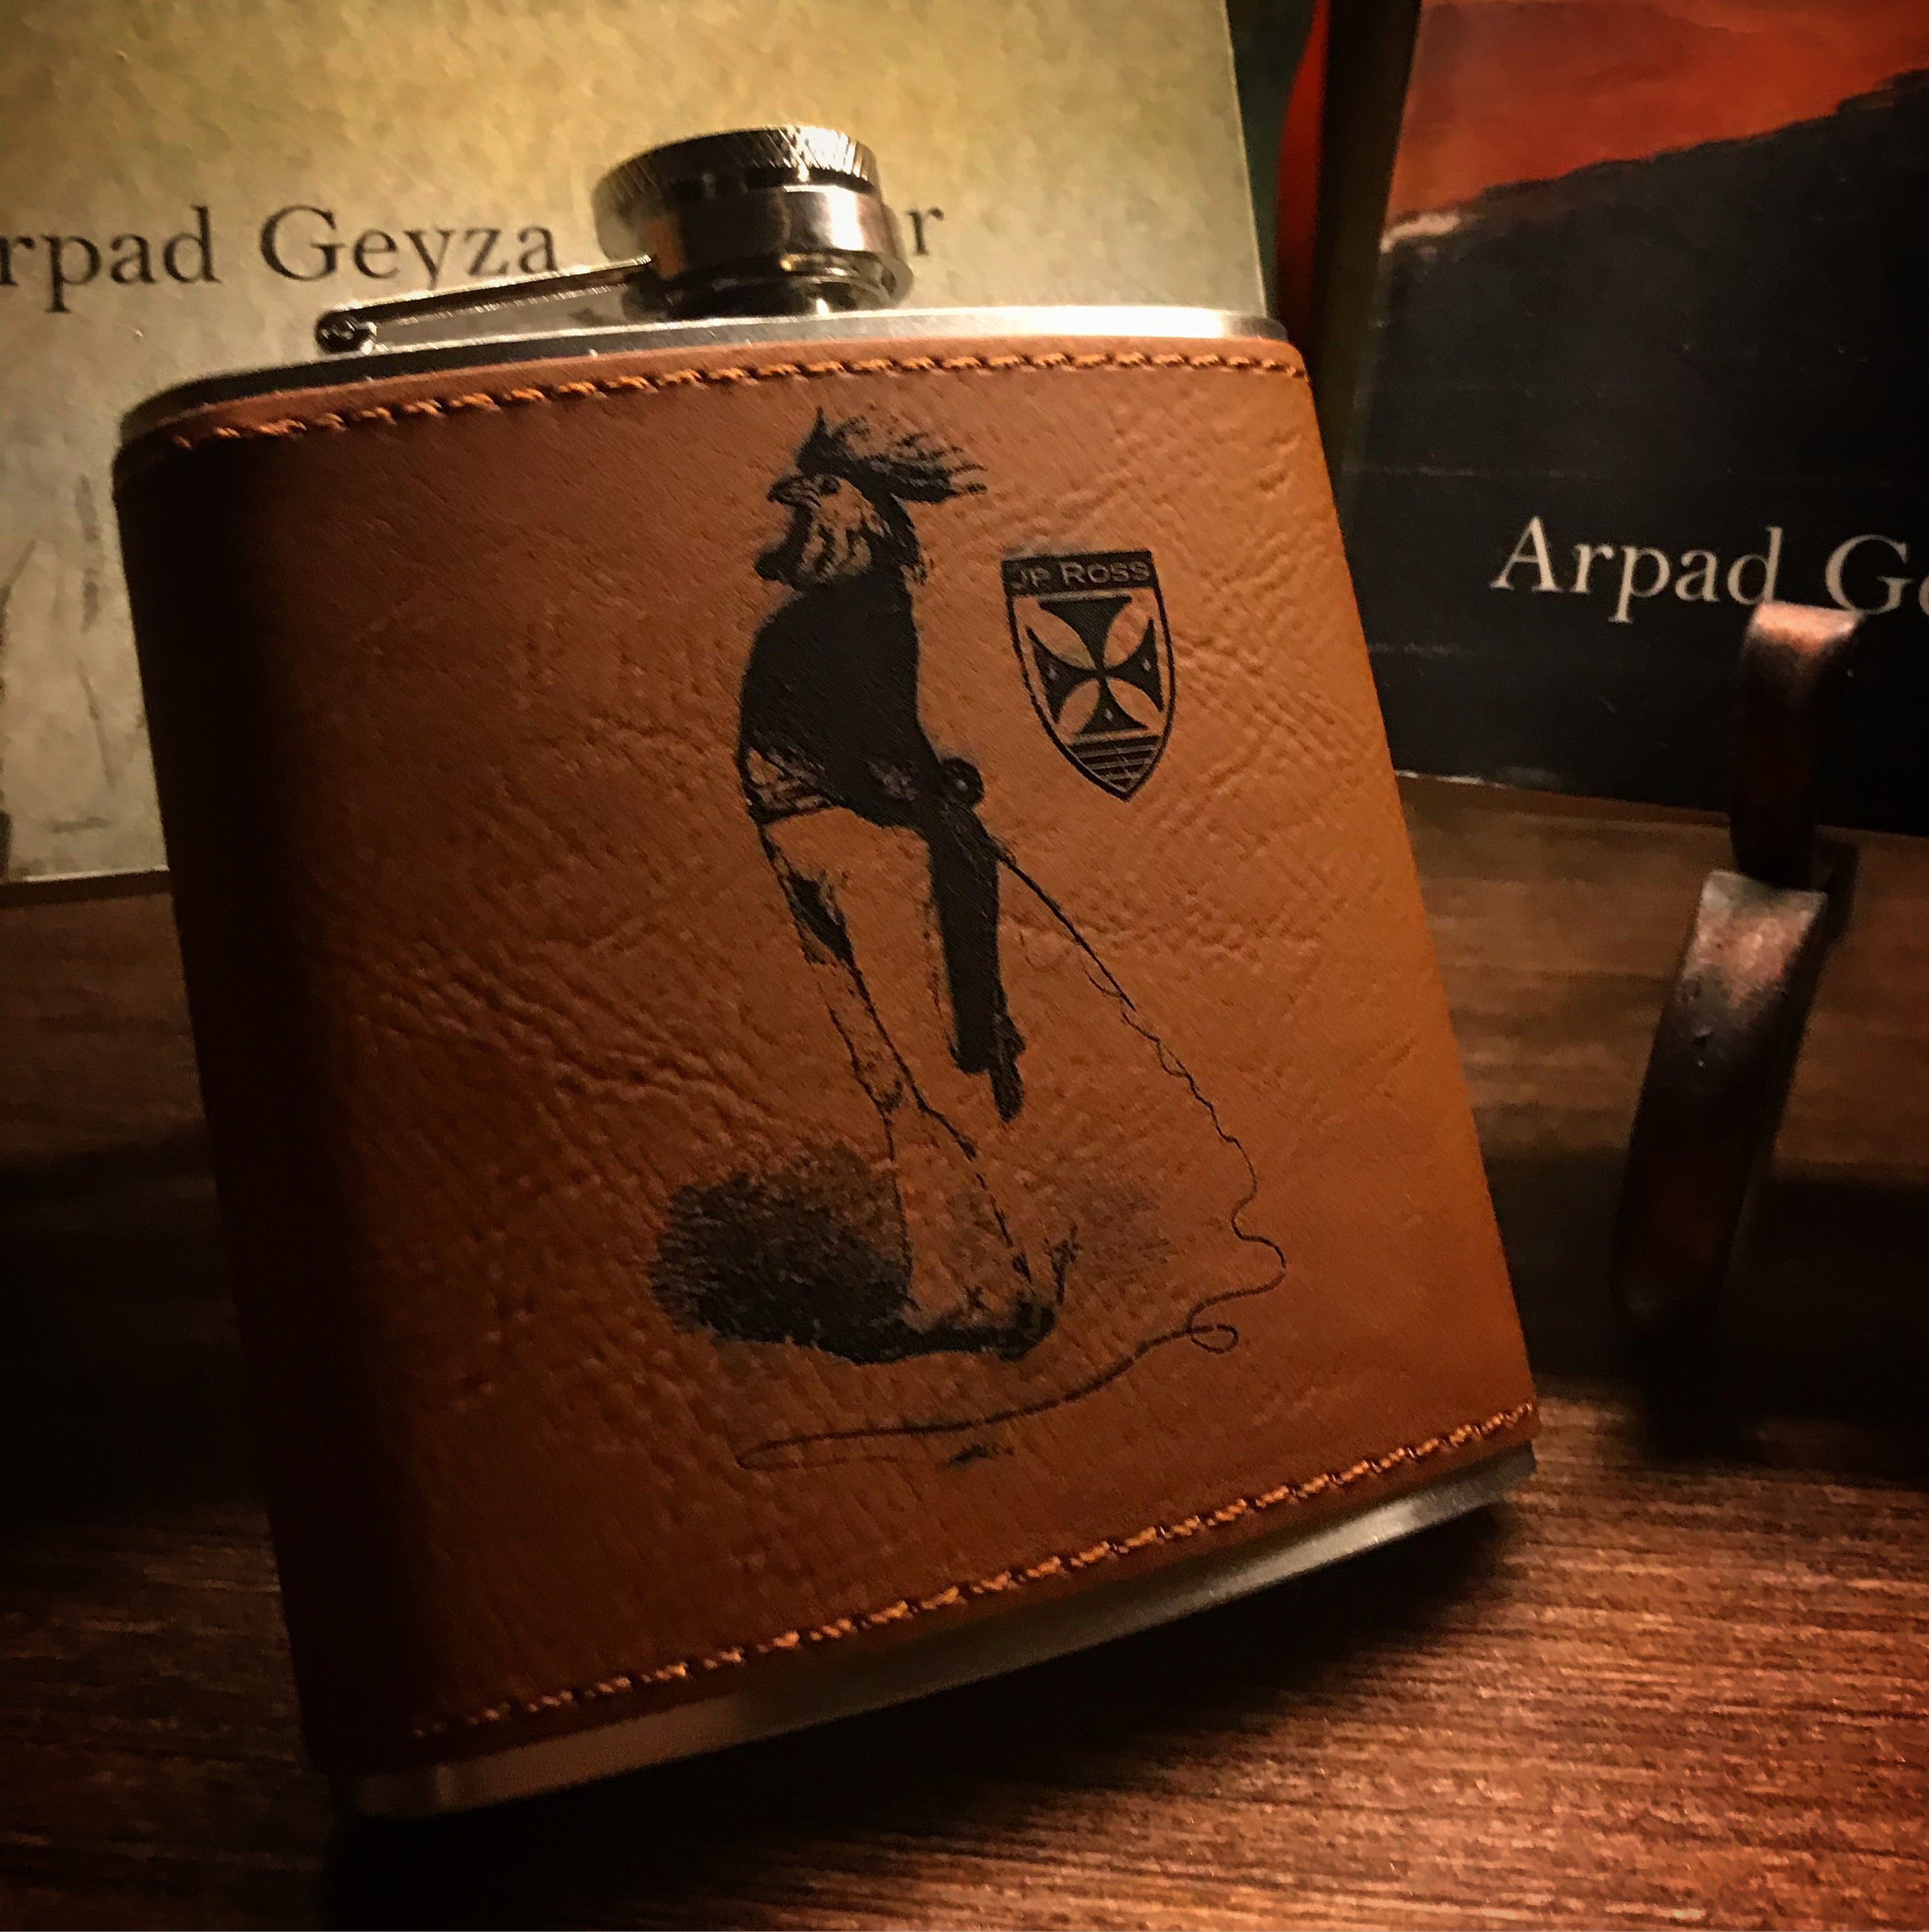 6oz stainless and leather hip flask